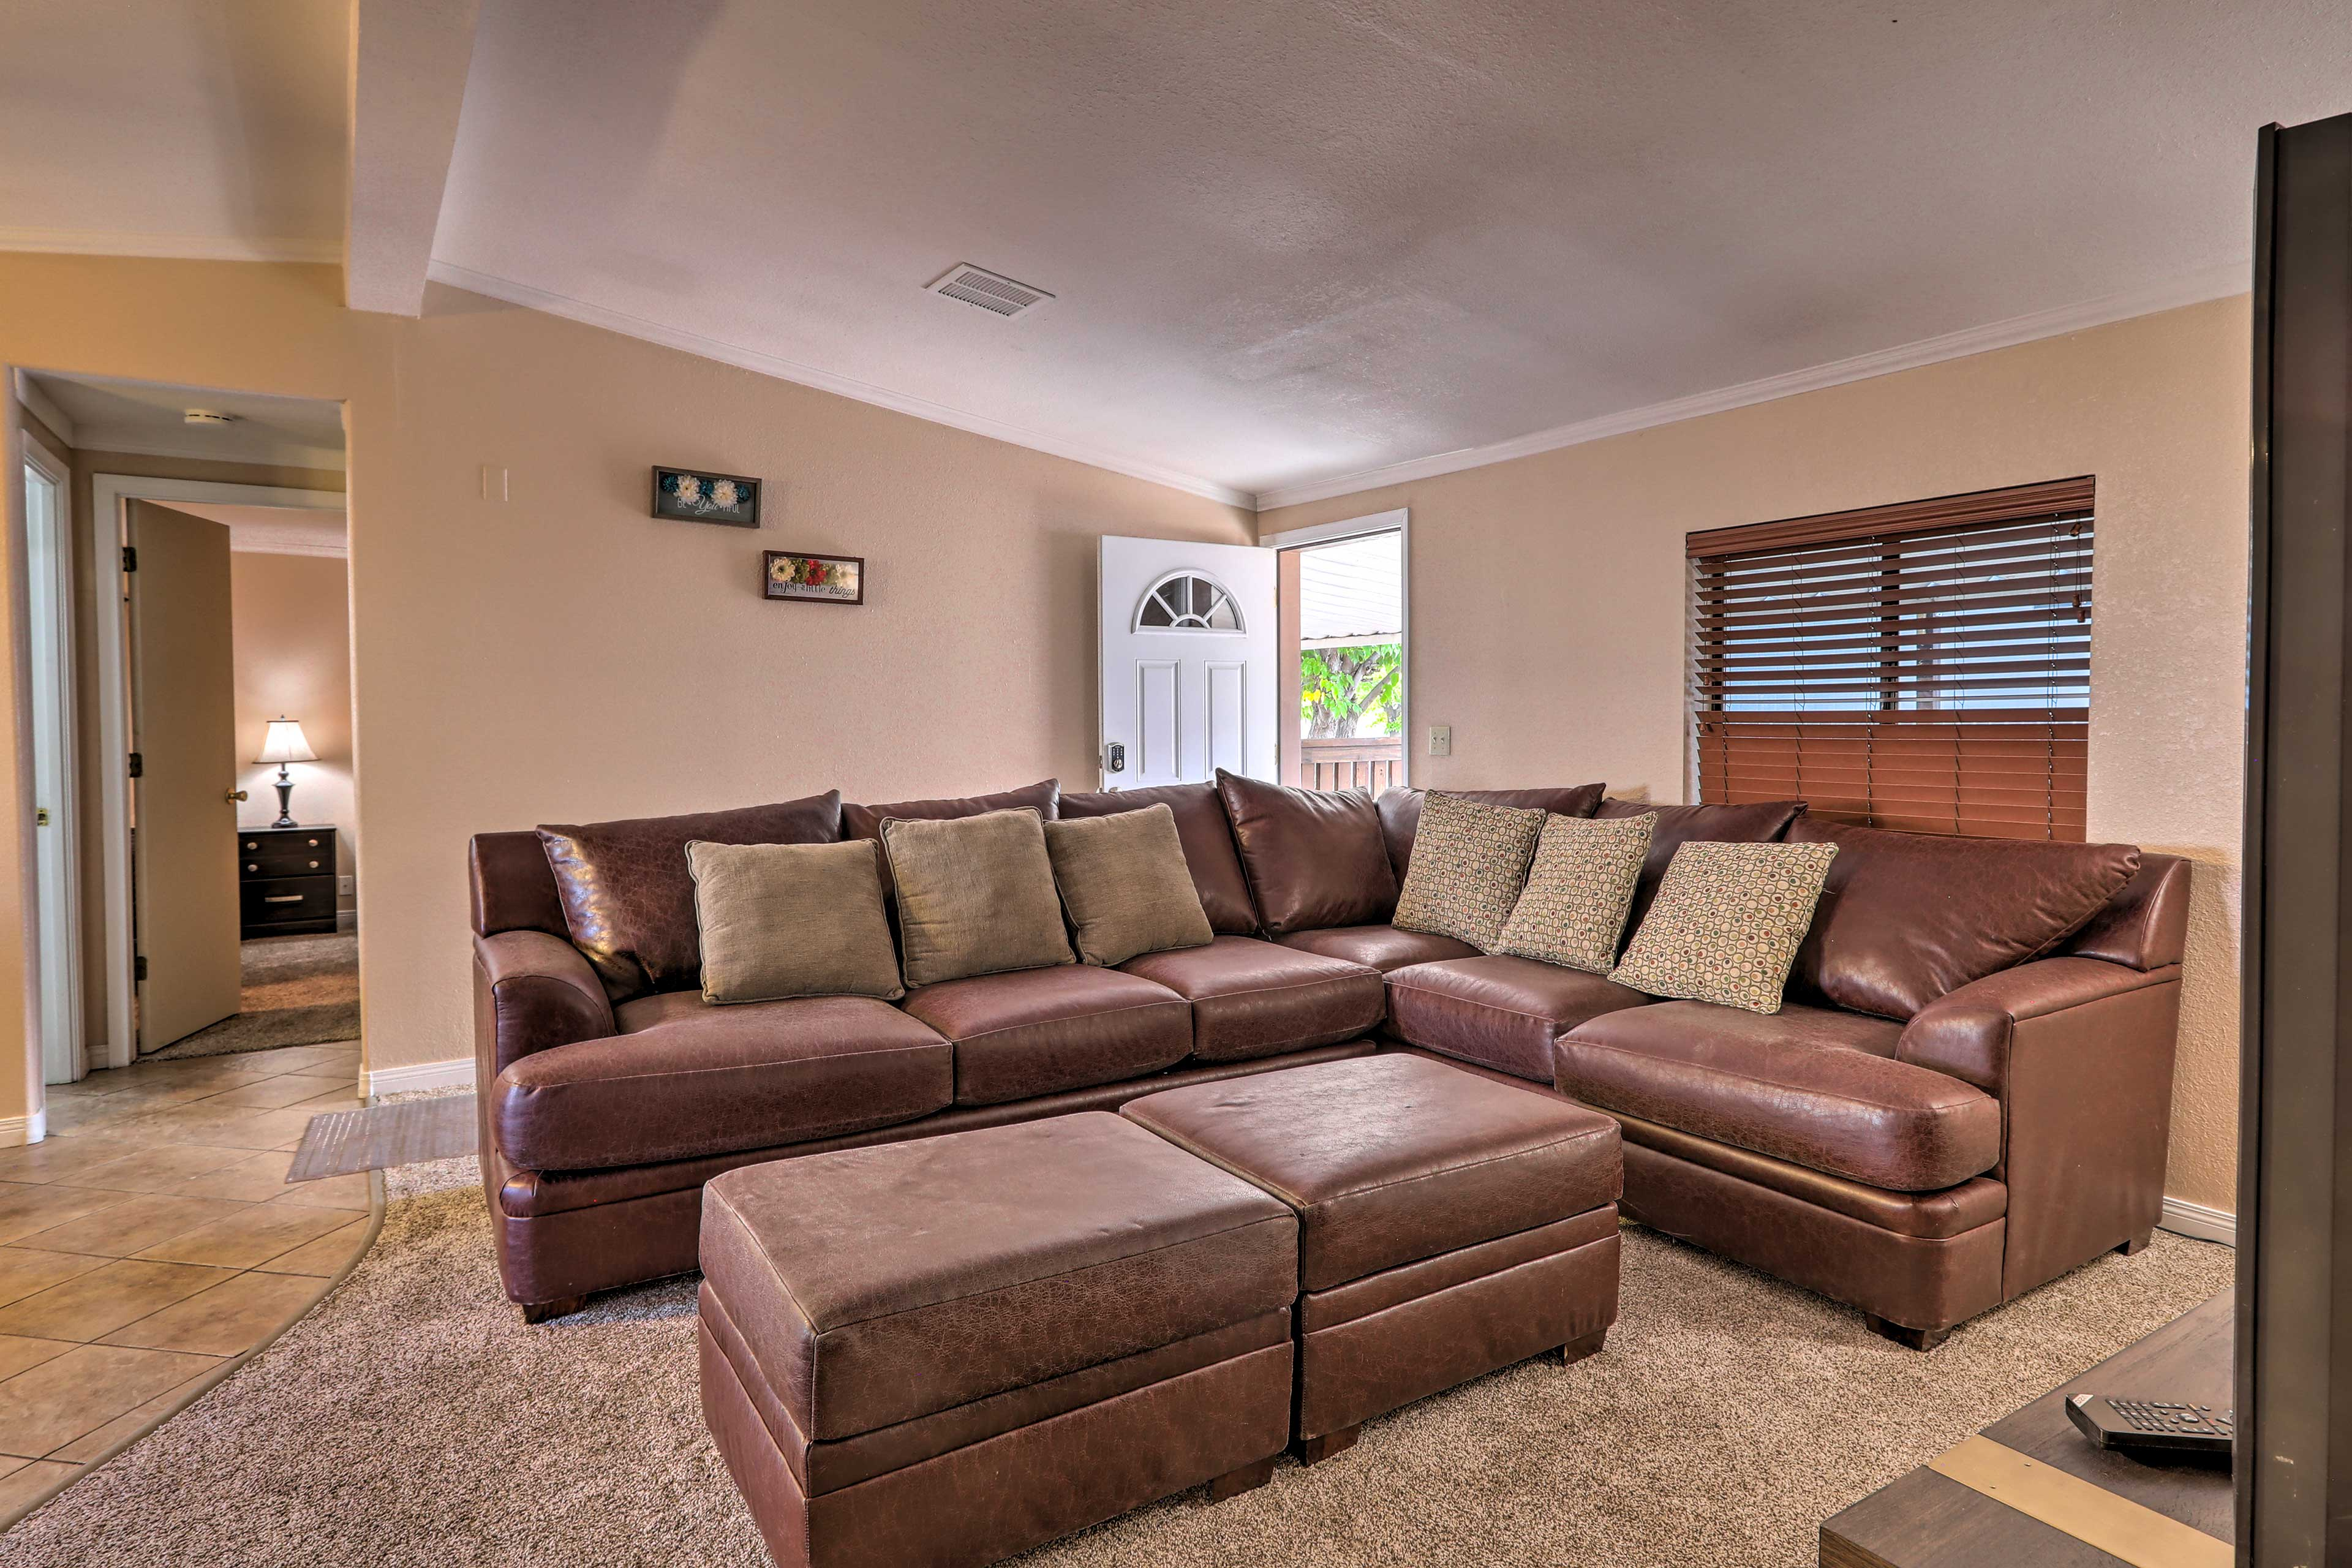 Enjoy a comfortably stay in Page, AZ at this 3 bedroom, 2 bath home.